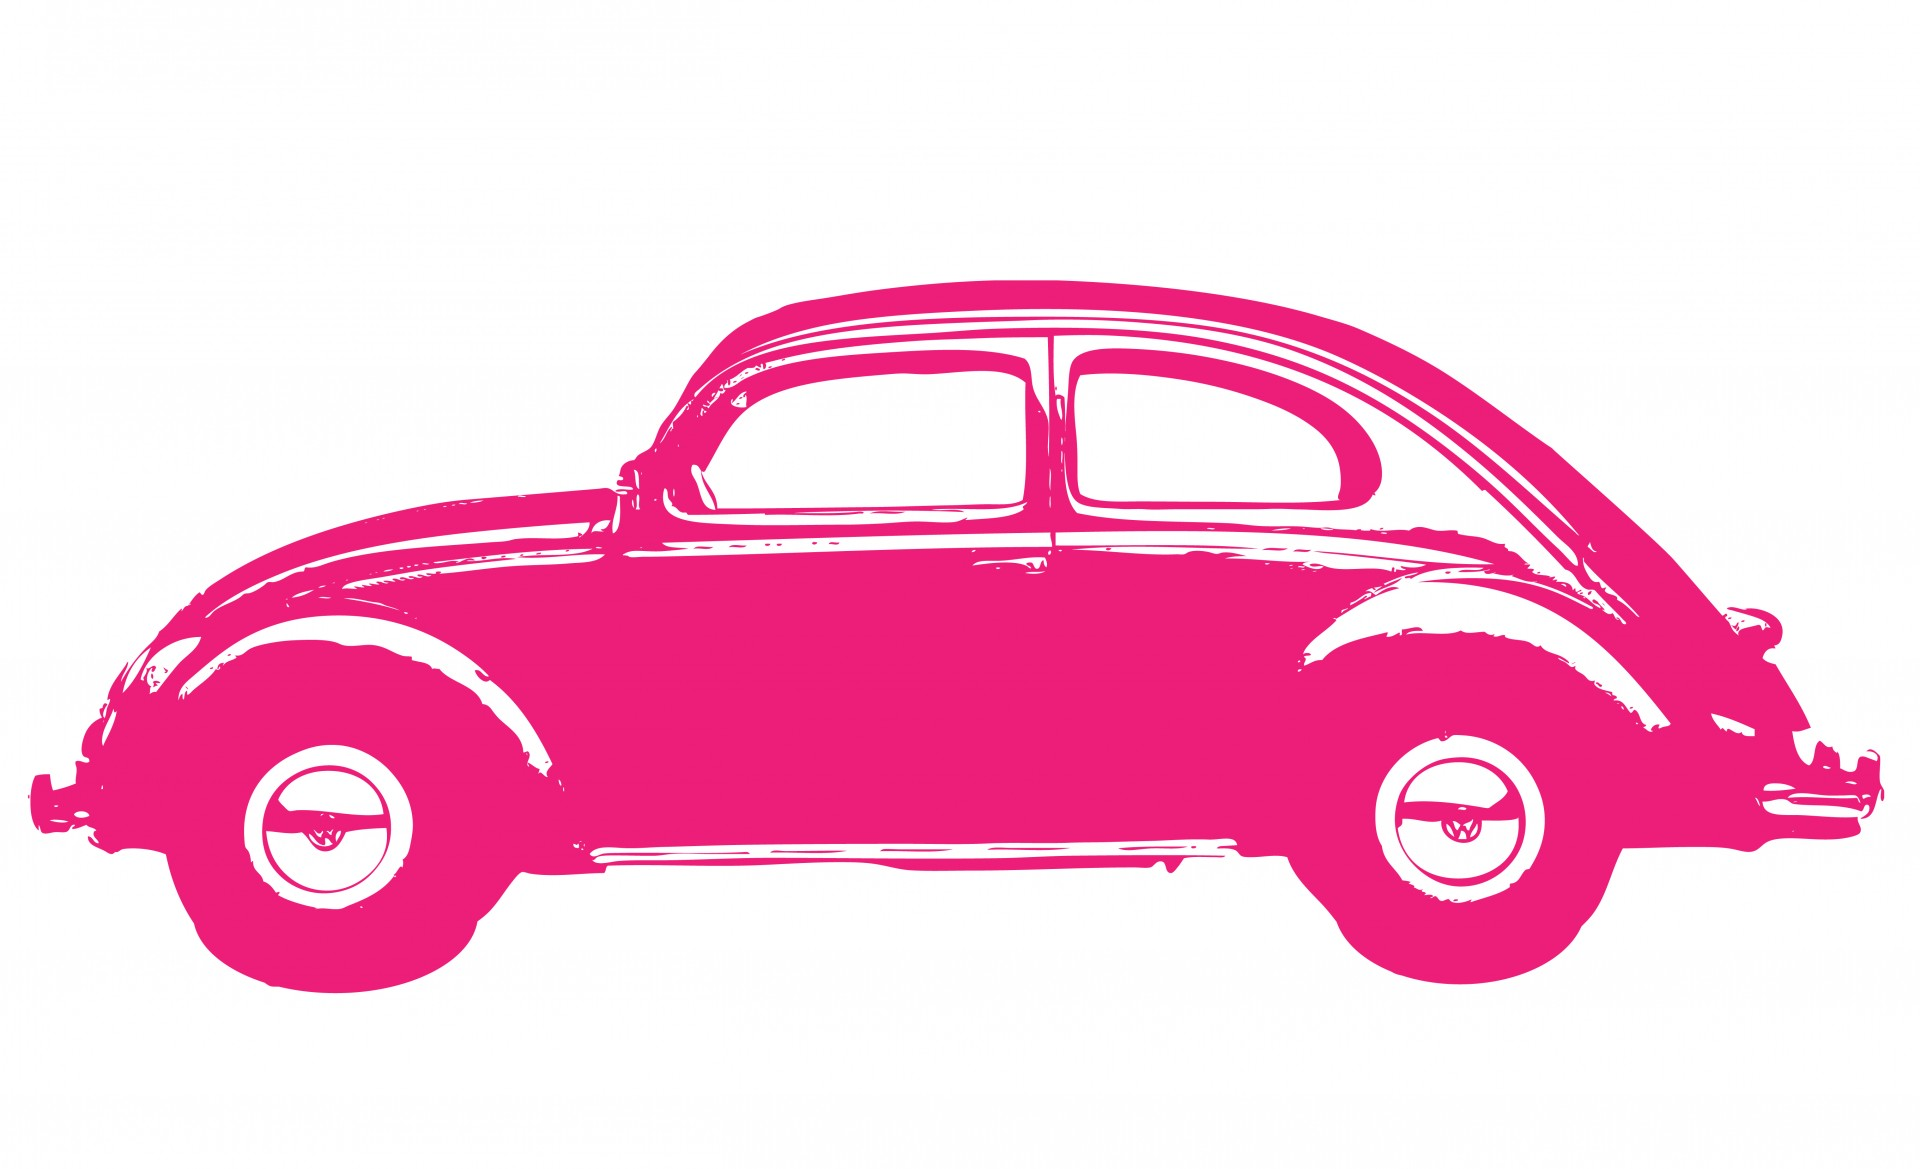 Race Car clipart pink Clipart Free Car — Car